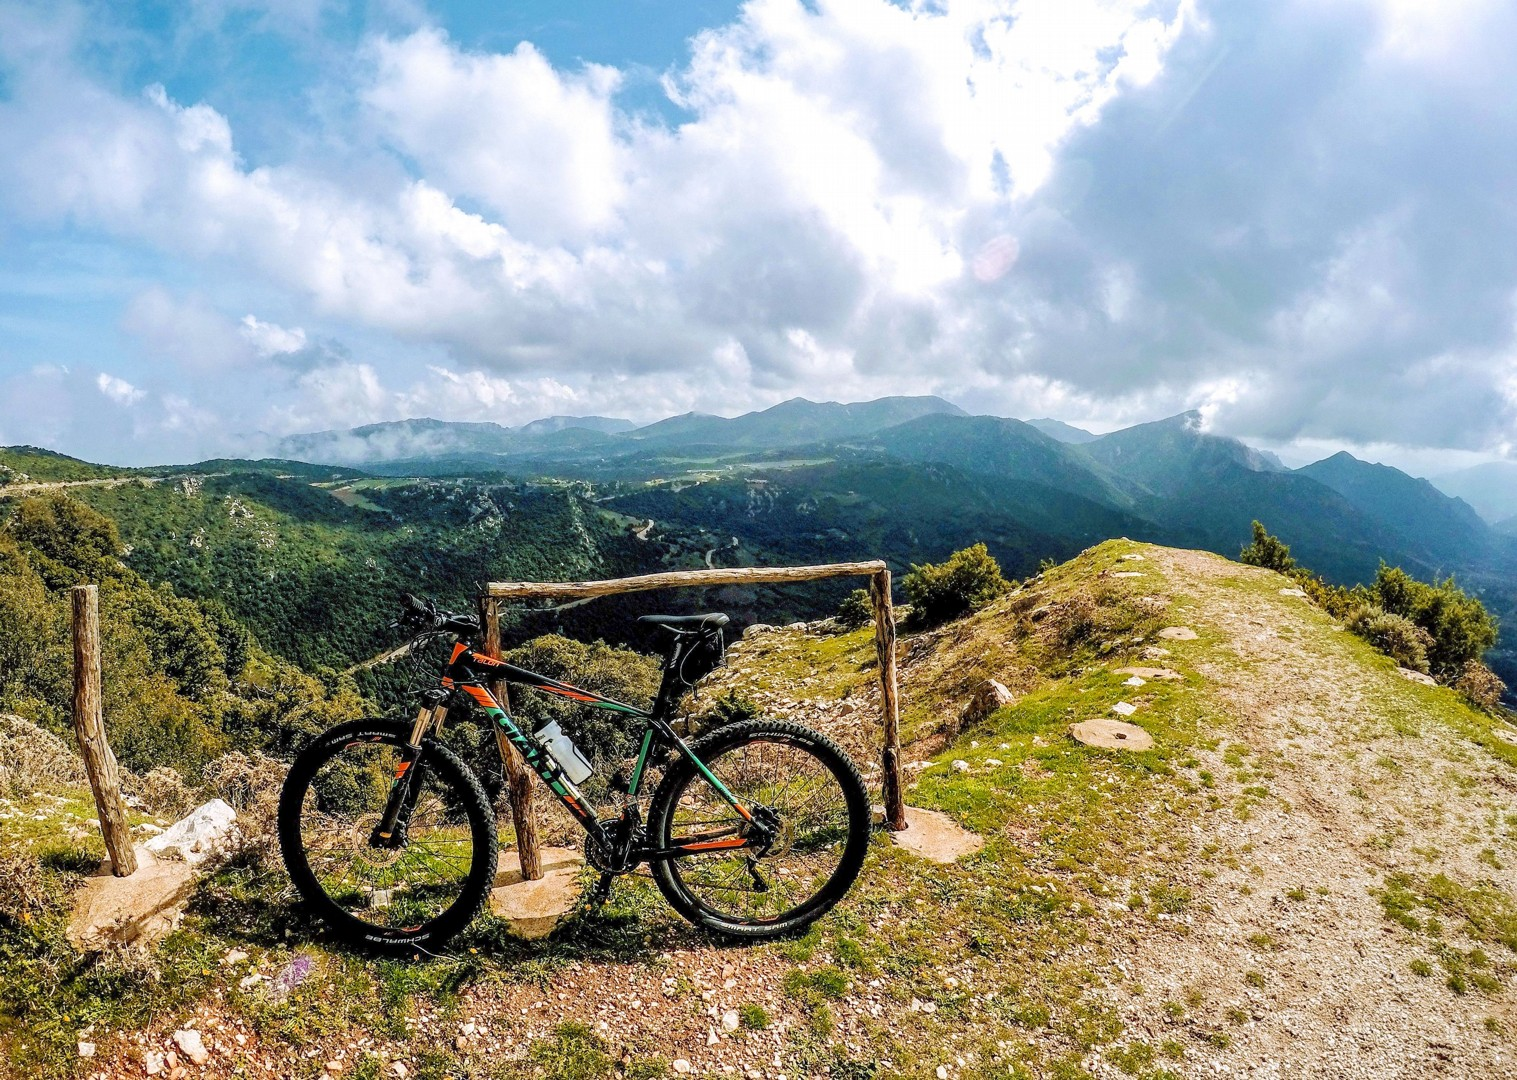 mountain-ranges-sardinia-descents-biking-views-supramonte-italy.jpg - Italy - Sardinia - Coast to Coast - Self-Guided Mountain Bike Holiday - Mountain Biking